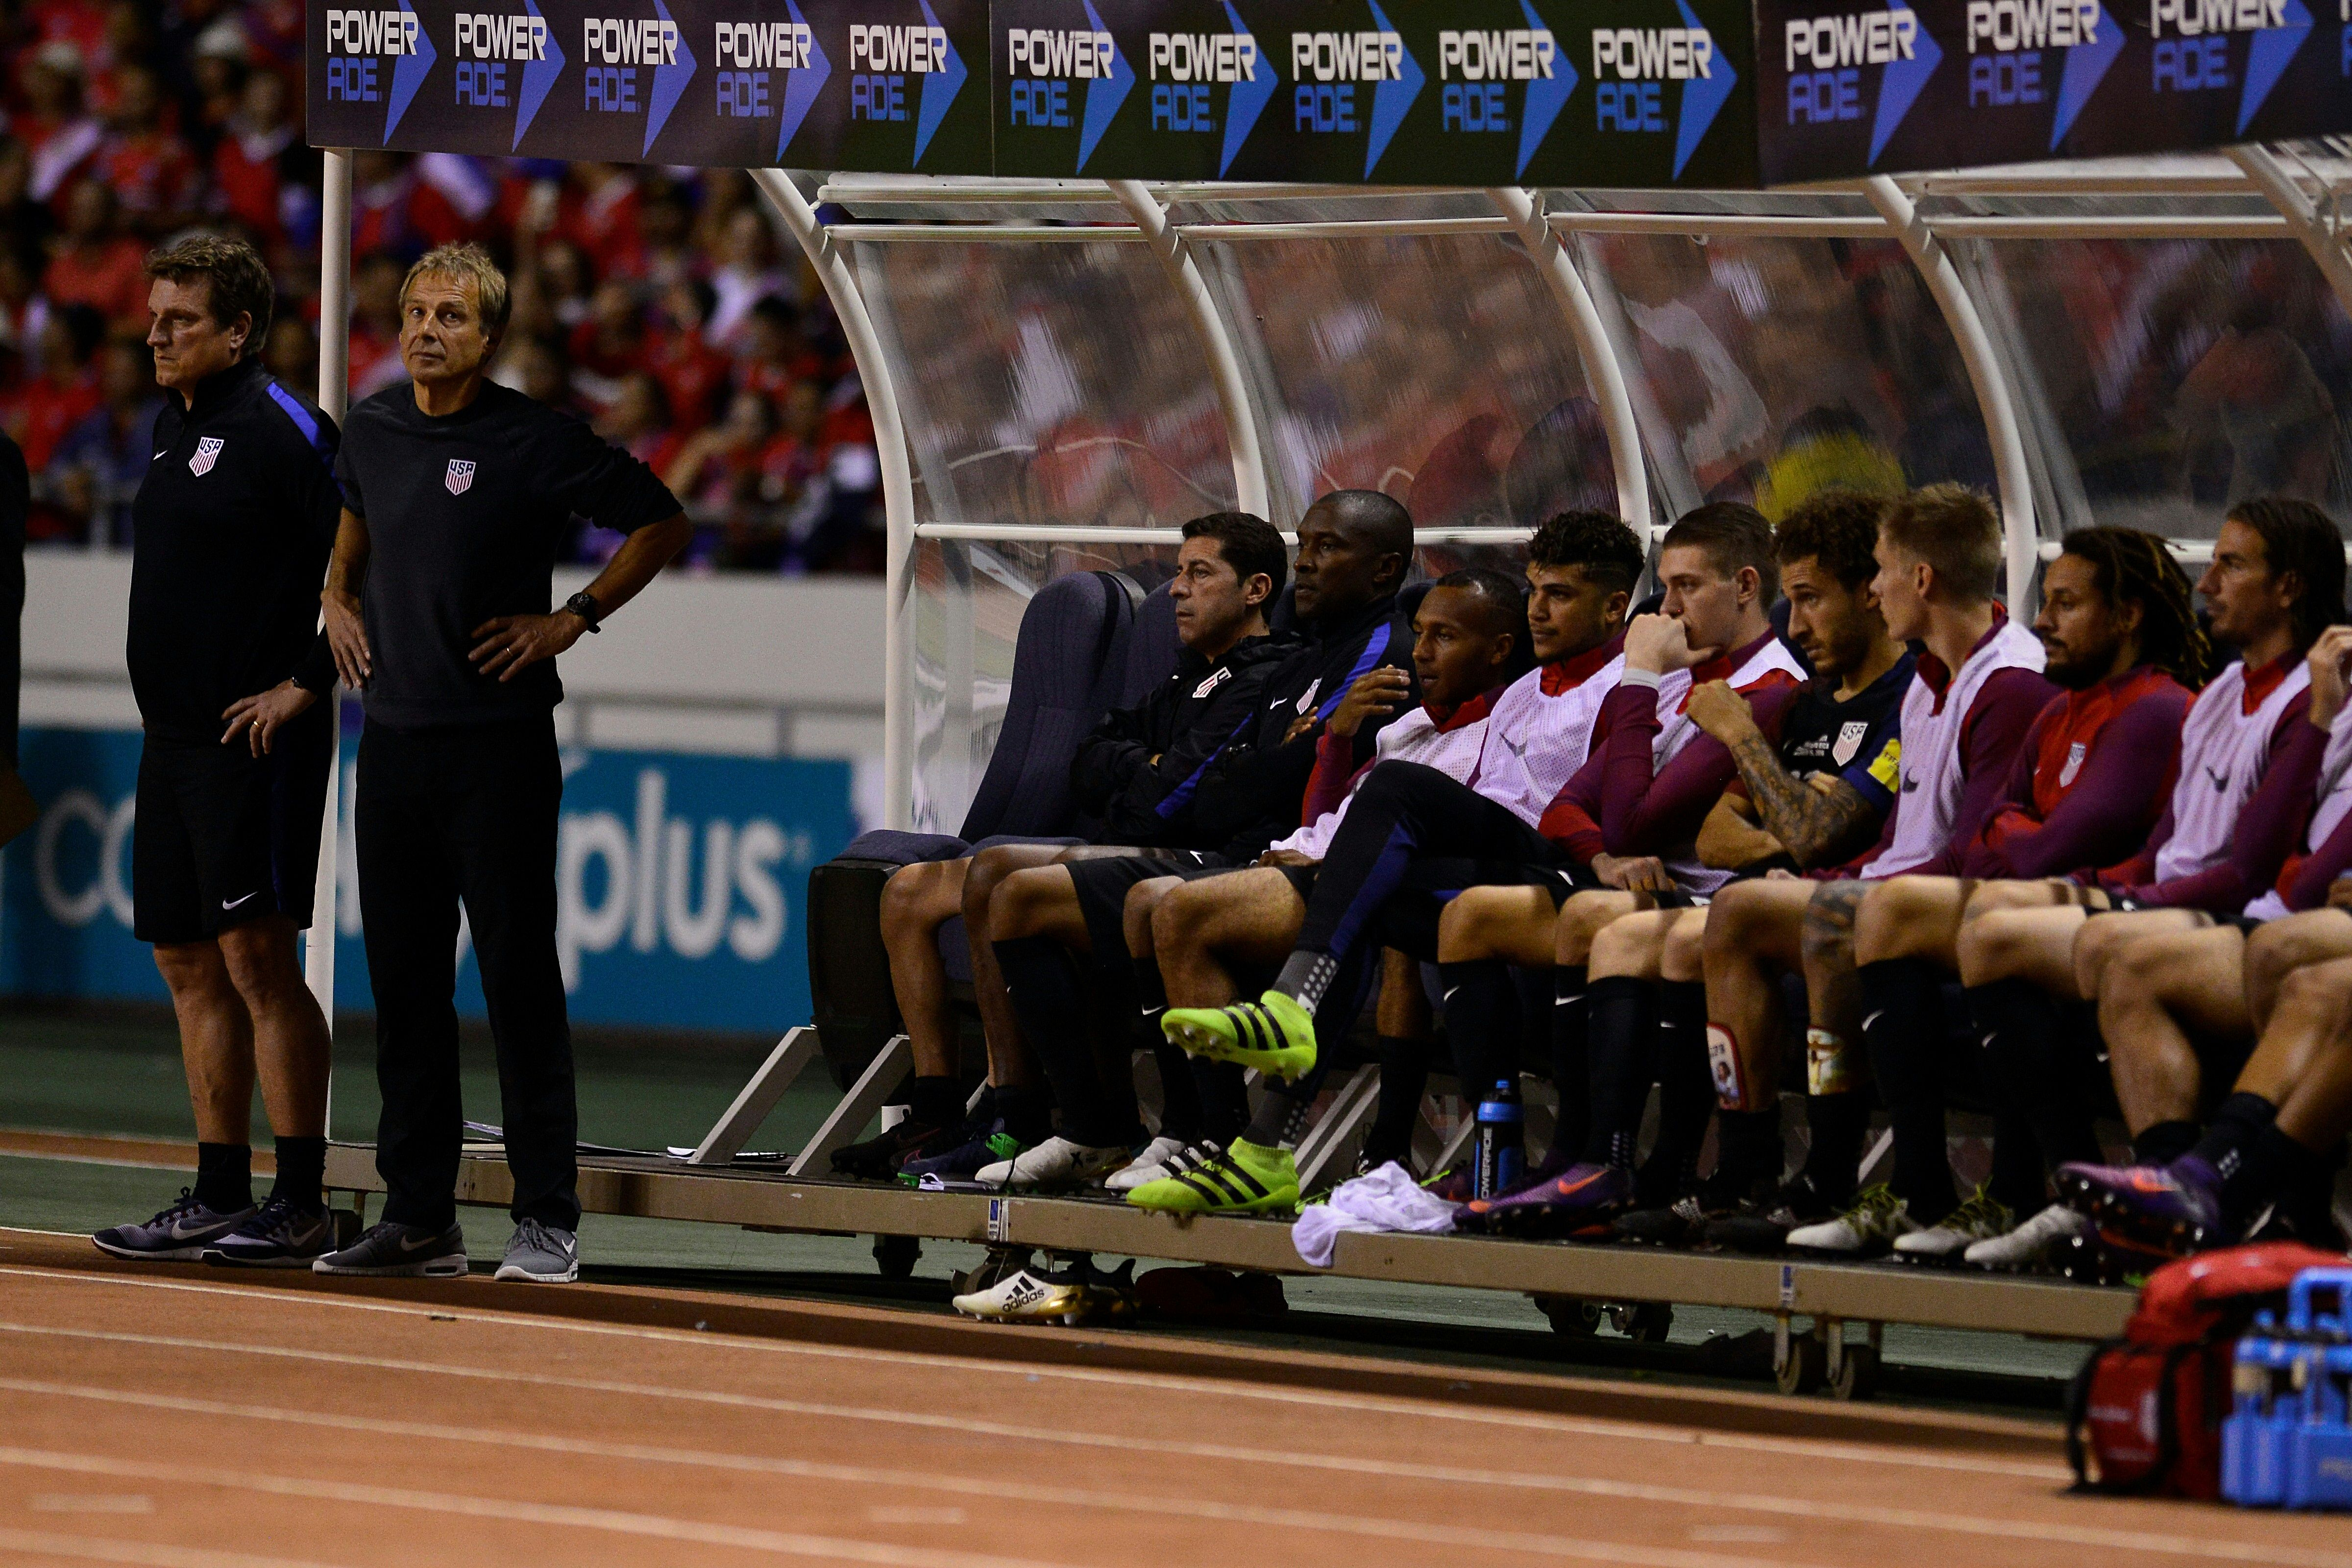 United States' players on the bench react during their 2018 FIFA World Cup qualifier football match against Costa Rica, in San Jose, on November 15, 2016.